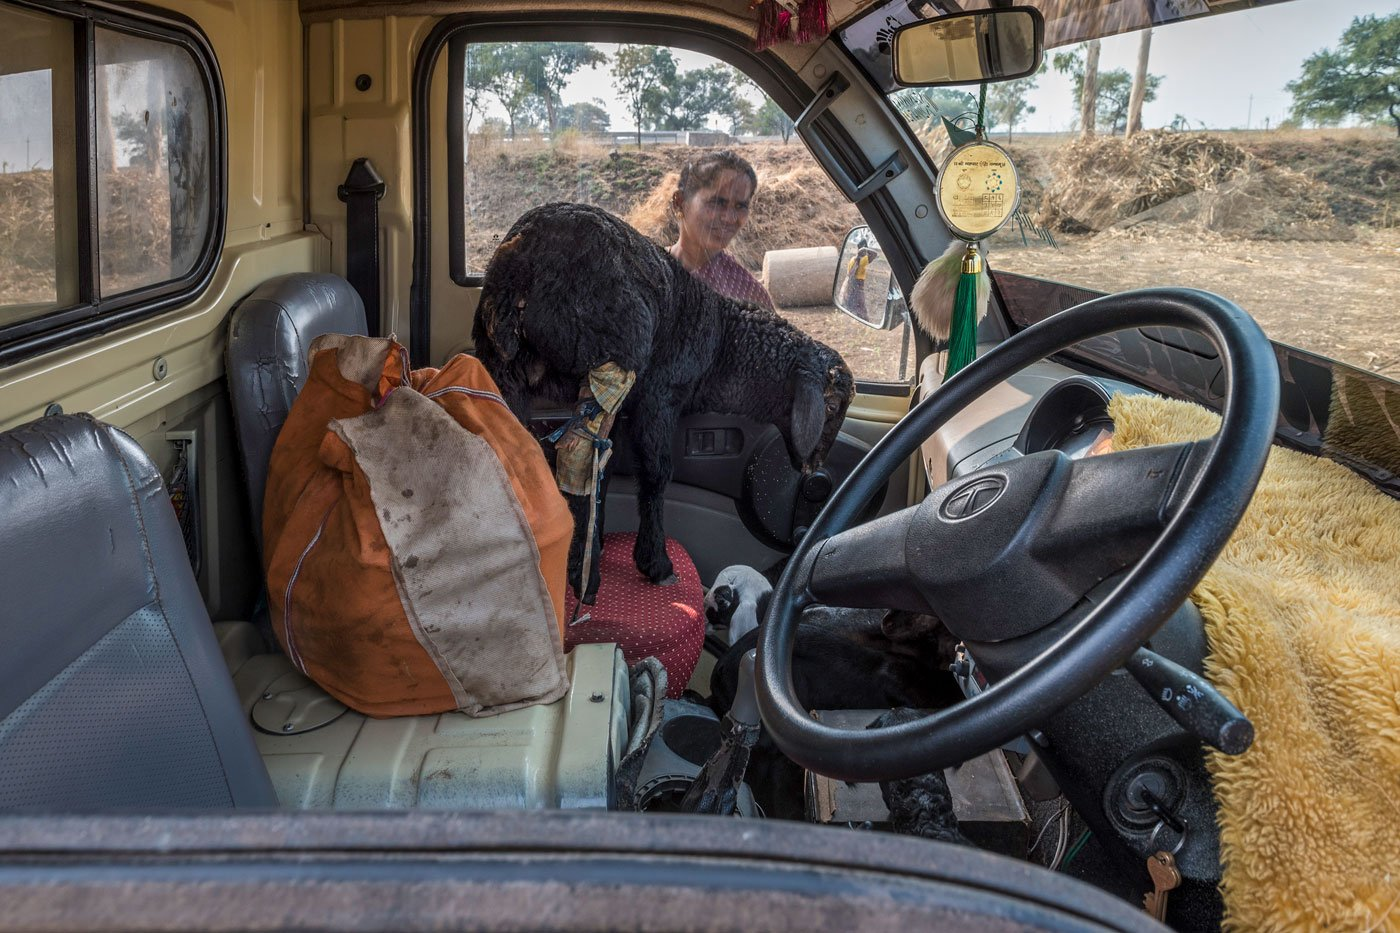 During the migration walks, great care is taken to safeguard the wounded or ill animals – here, a wounded goat had occupied the front passenger seat of a van.